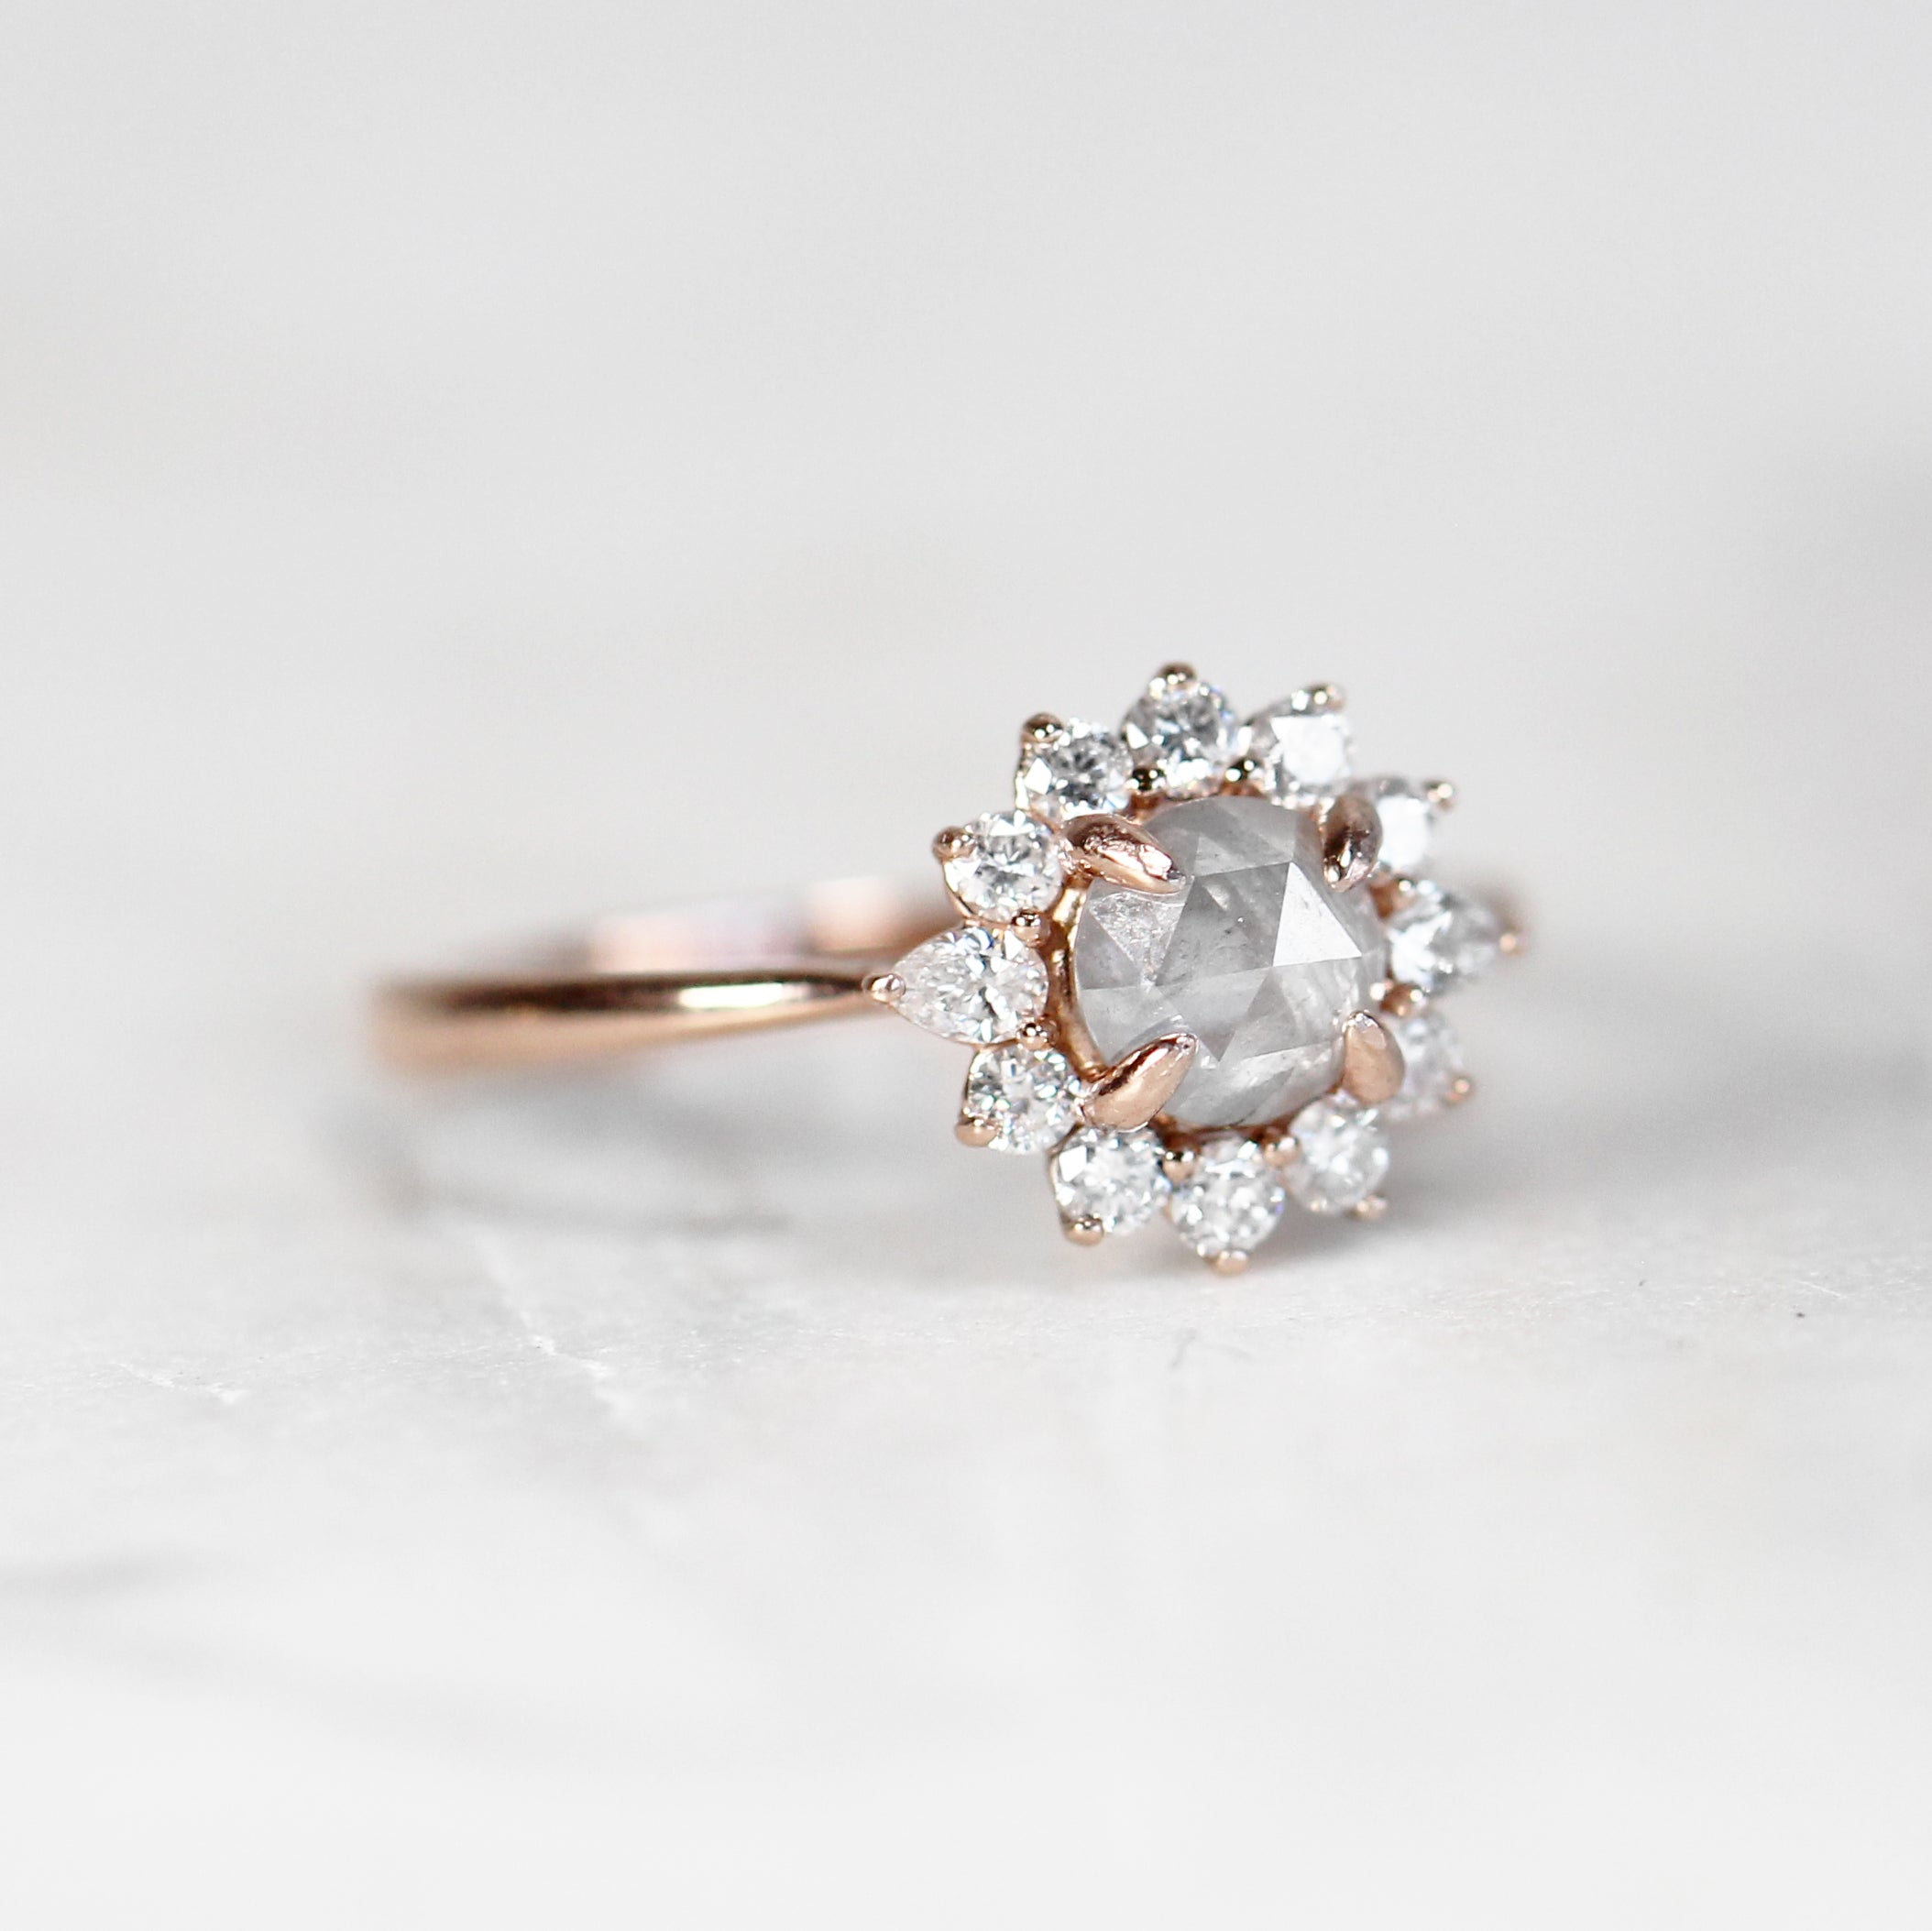 Samantha Dahlia Ring with .74 Carat Round Celestial Diamond in 10k Rose Gold - Celestial Diamonds ® by Midwinter Co.